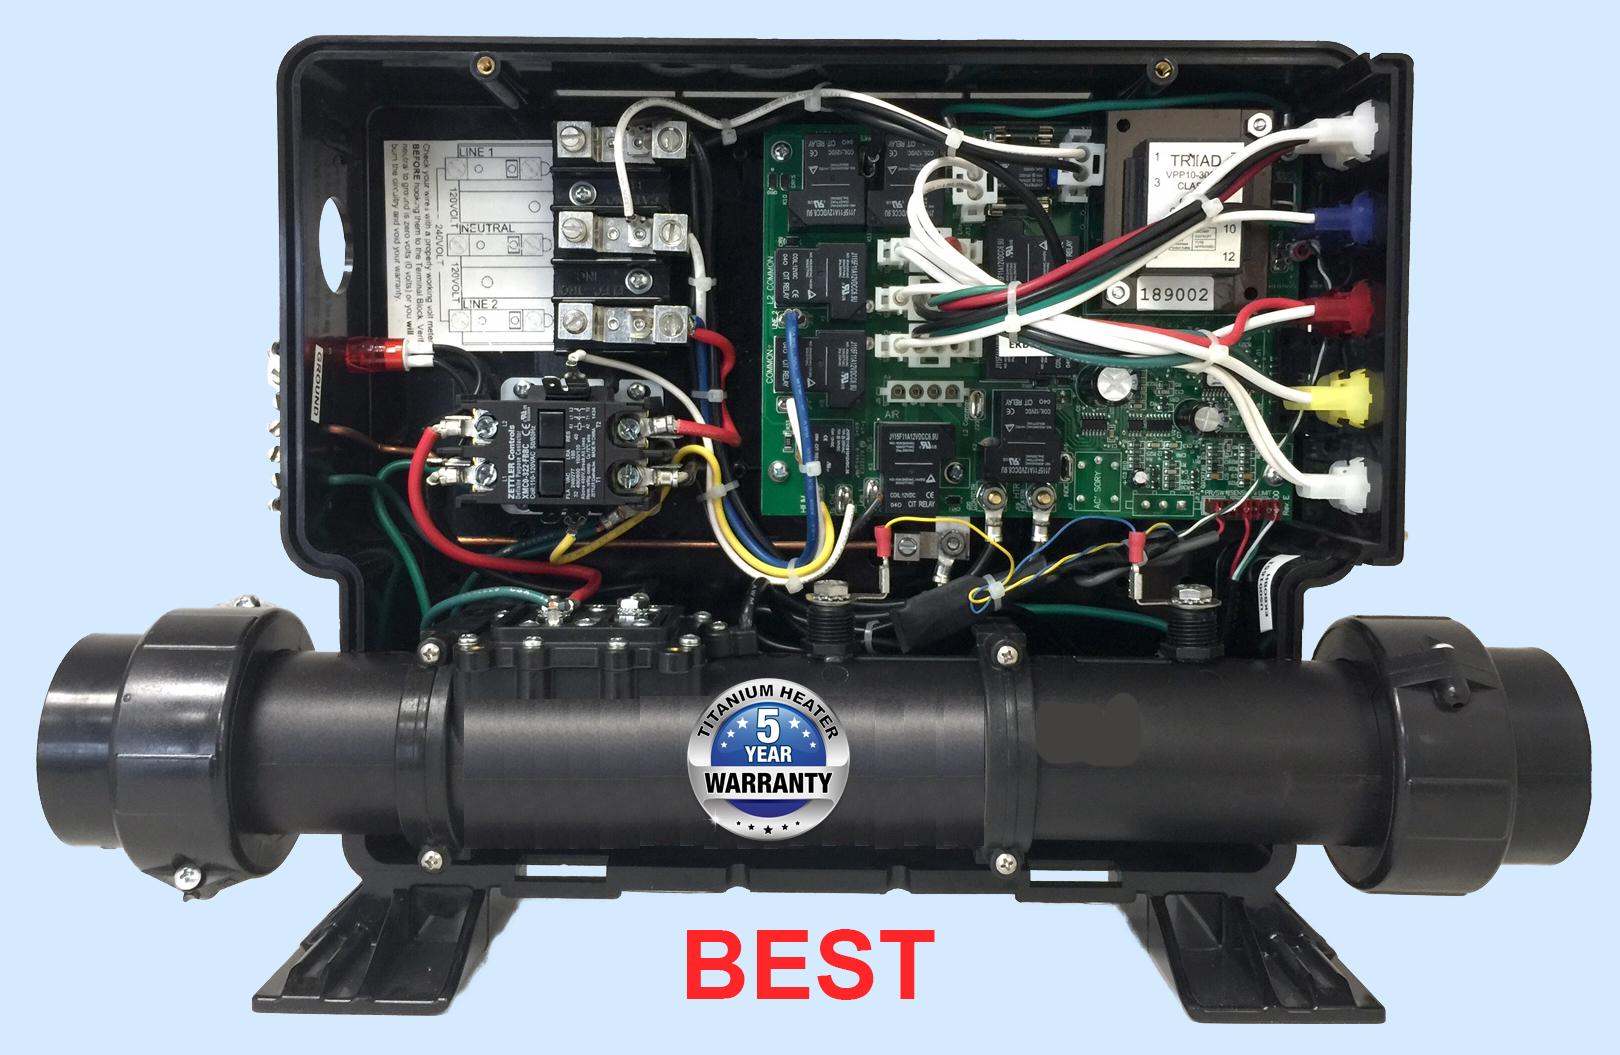 USC_CosmoHeat_Warranty_Open_best $299 95 direct replacement for balboa spa control $299 95 direct gecko spa wiring diagram at soozxer.org